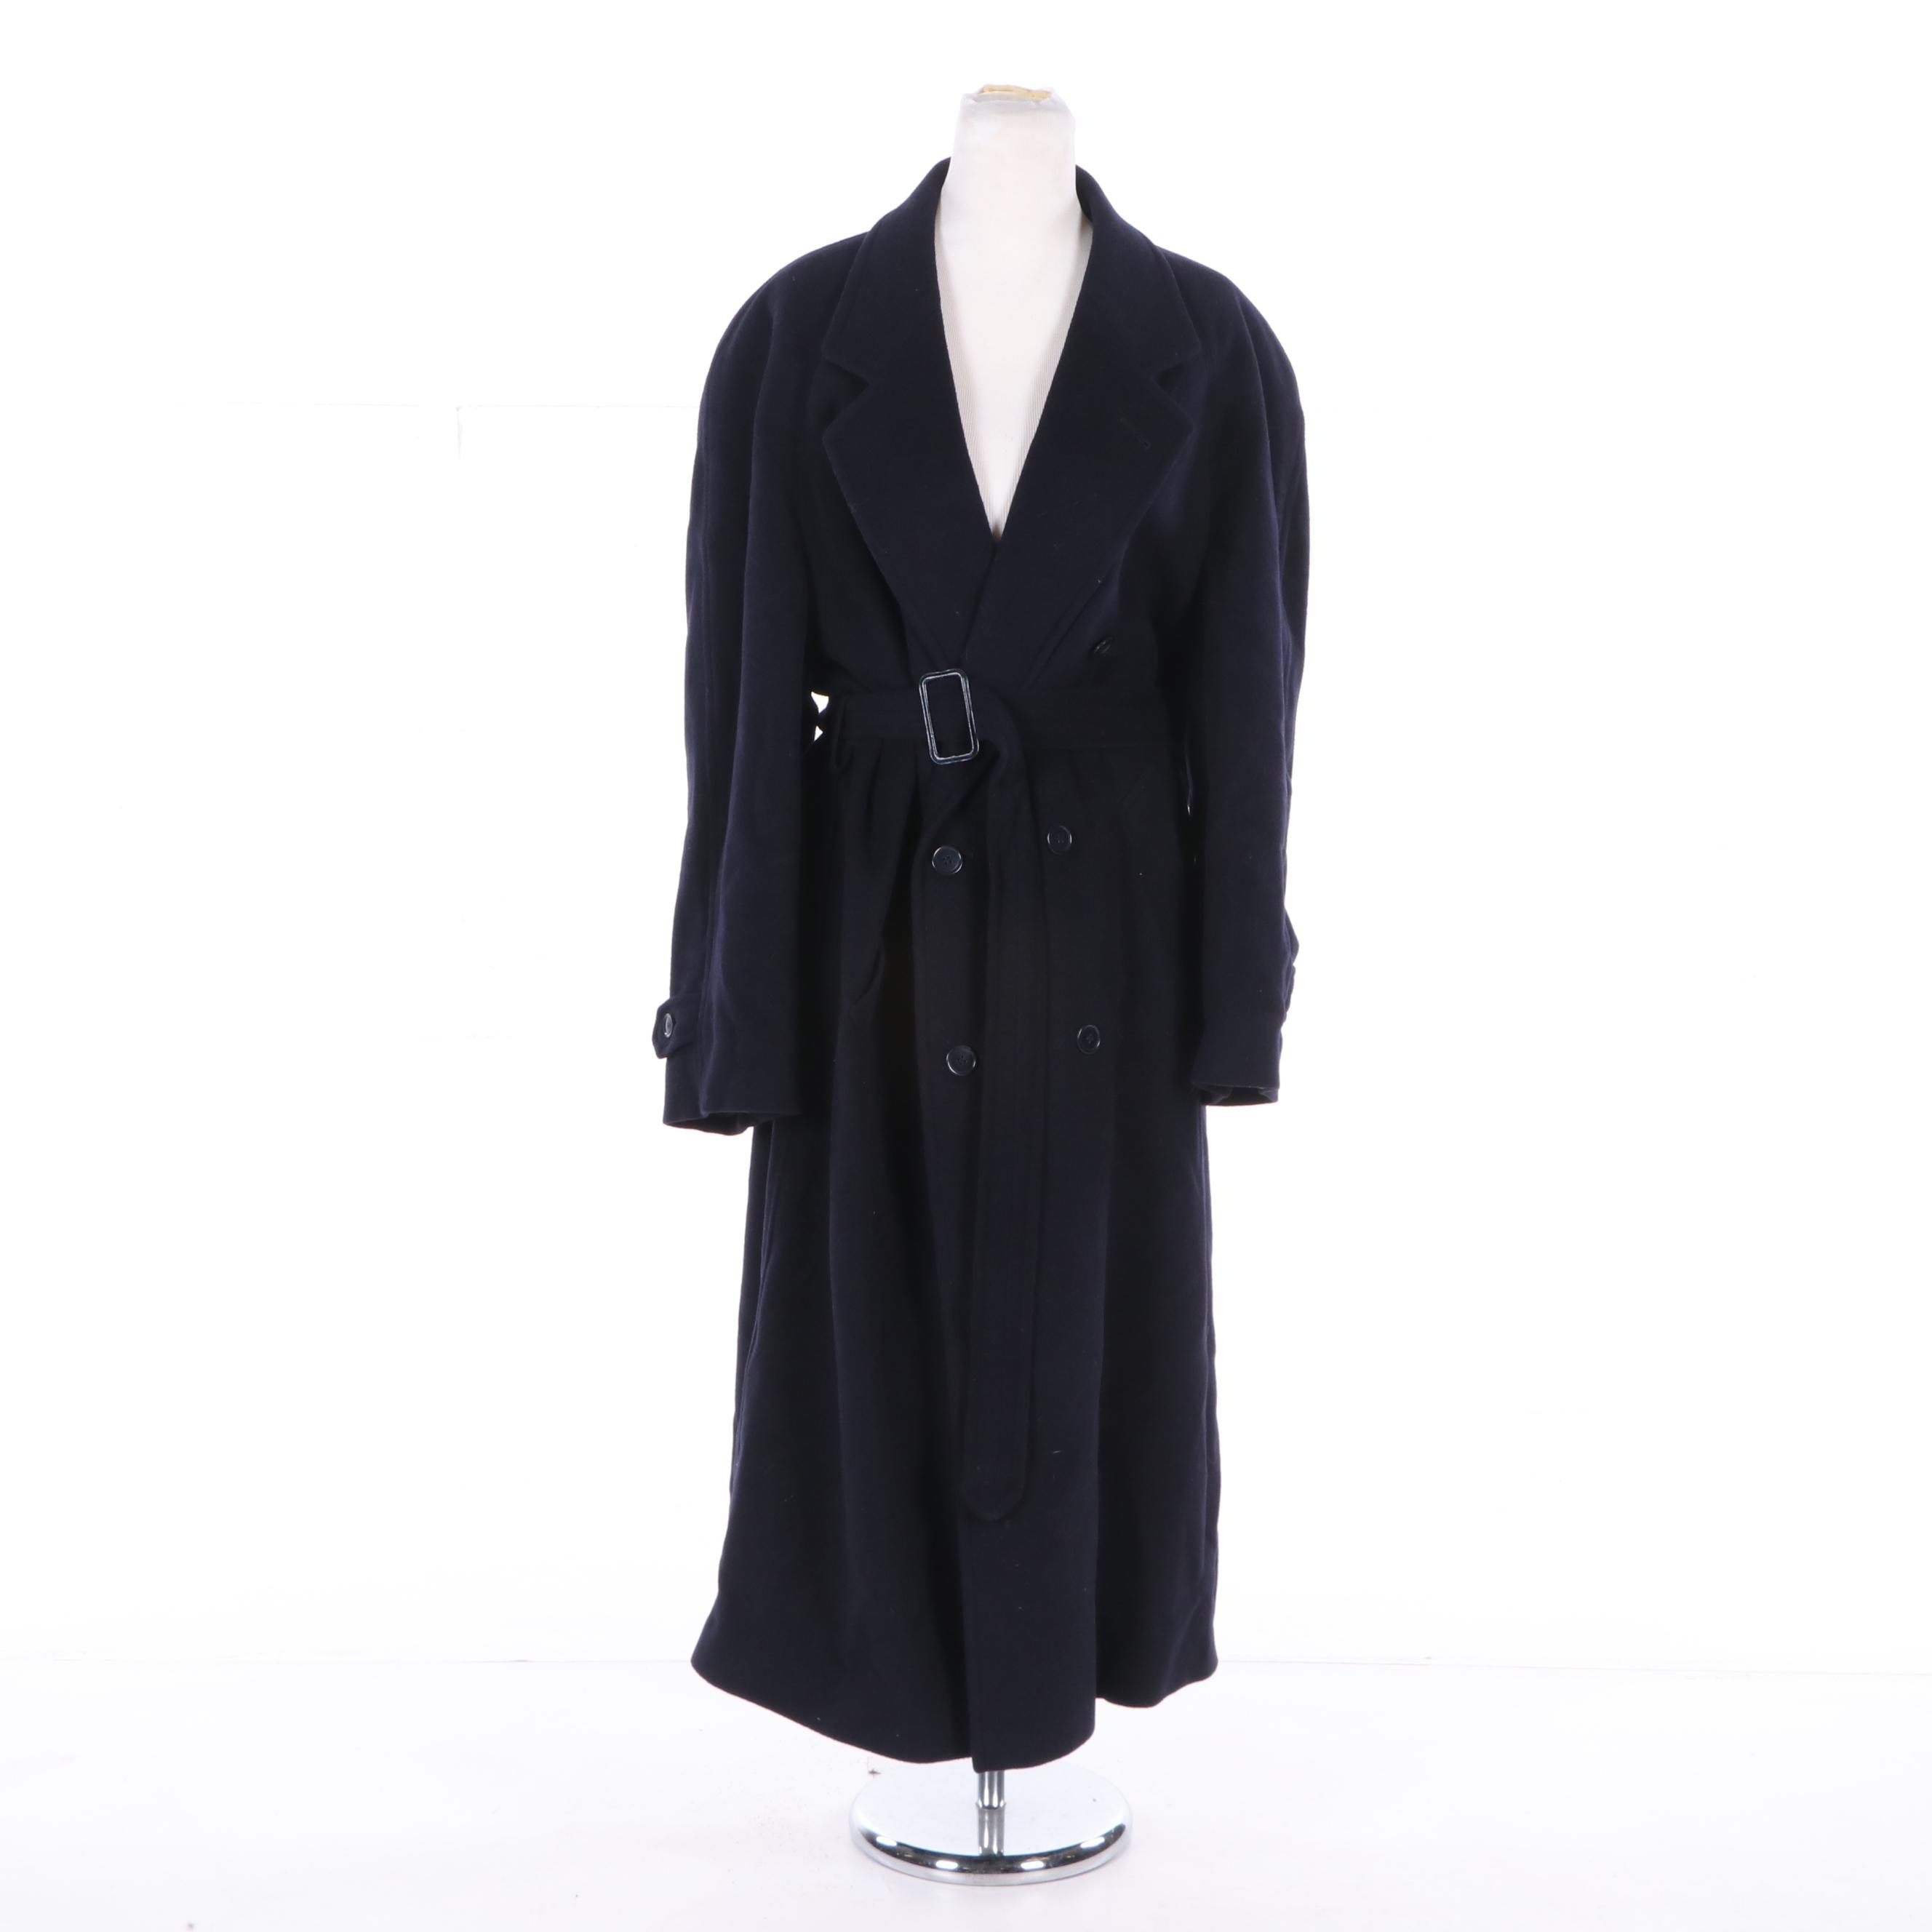 Men's Givenchy Monsieur Navy Wool Double-Breasted Coat with Belt, Made in Italy